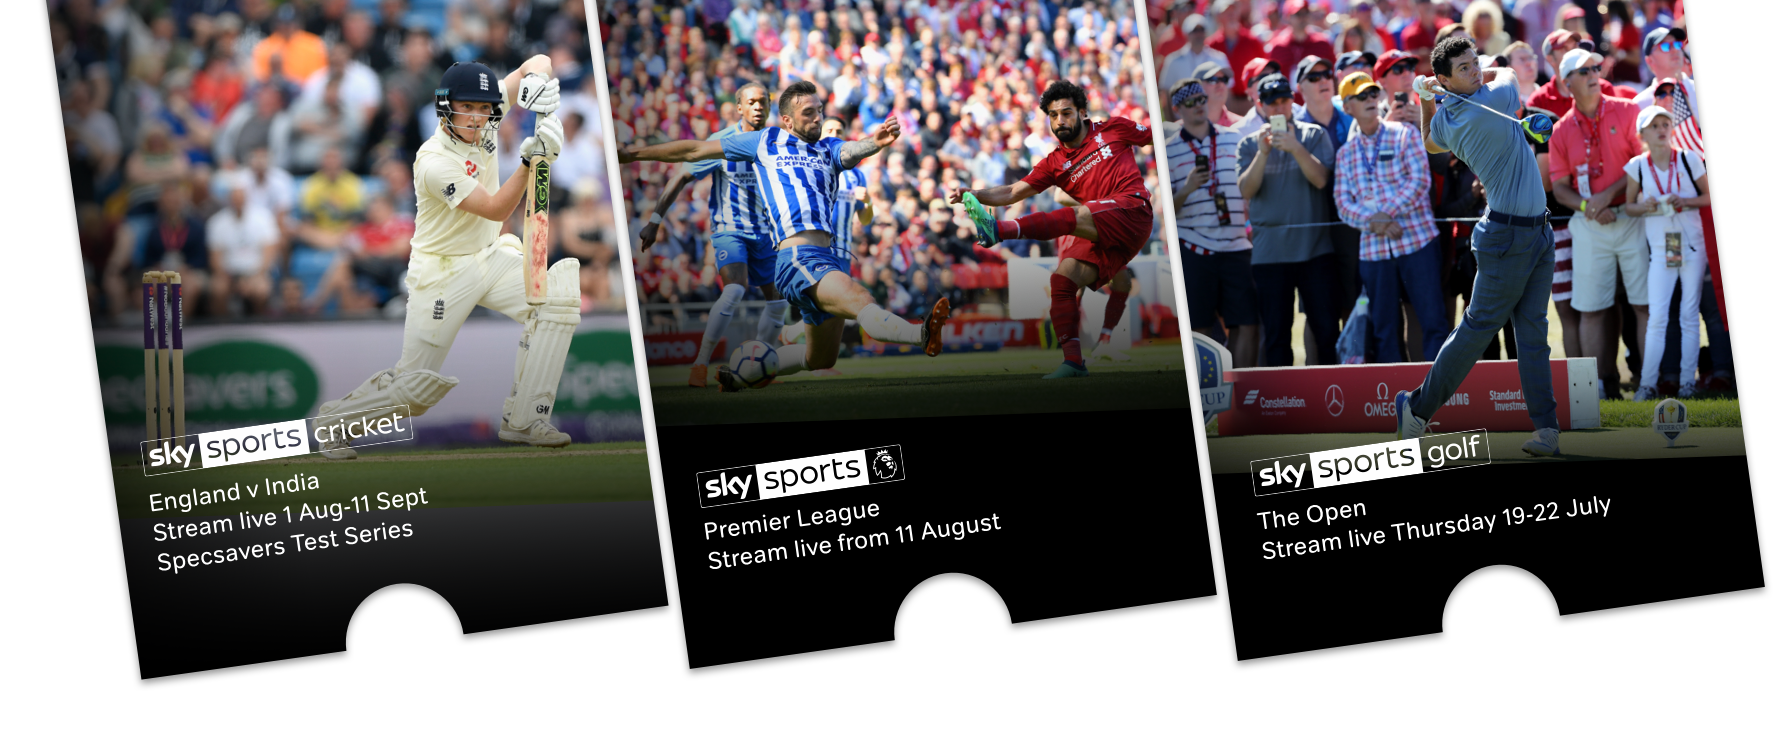 Watch Sky Sports online with a NOW TV Sky Sports Pass.